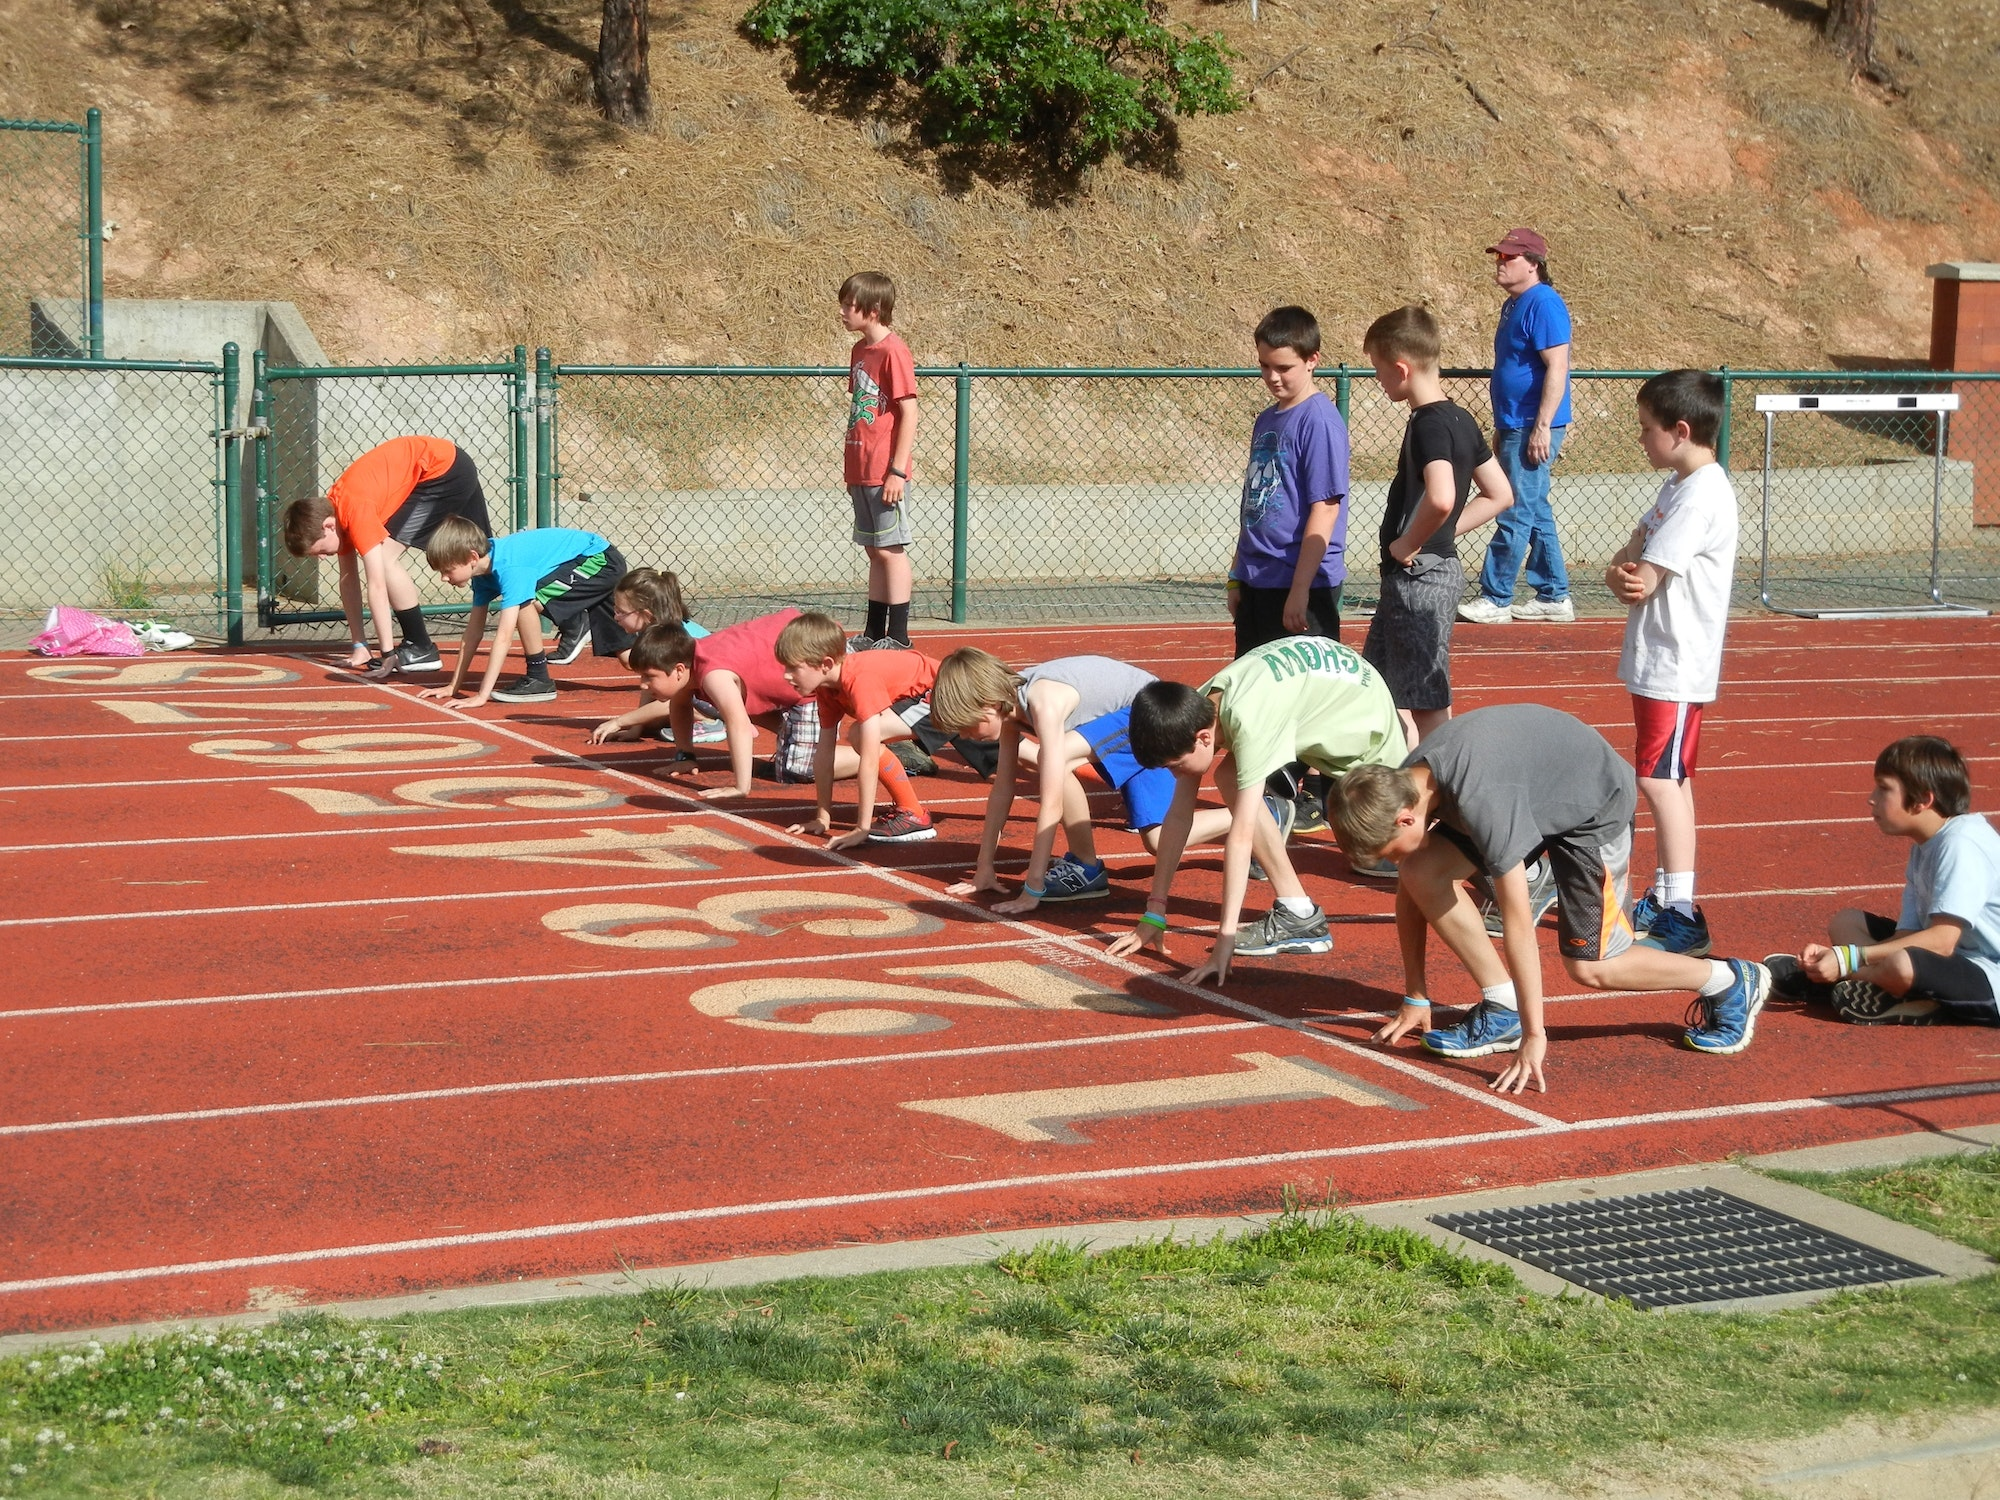 children at the starting line of a running track